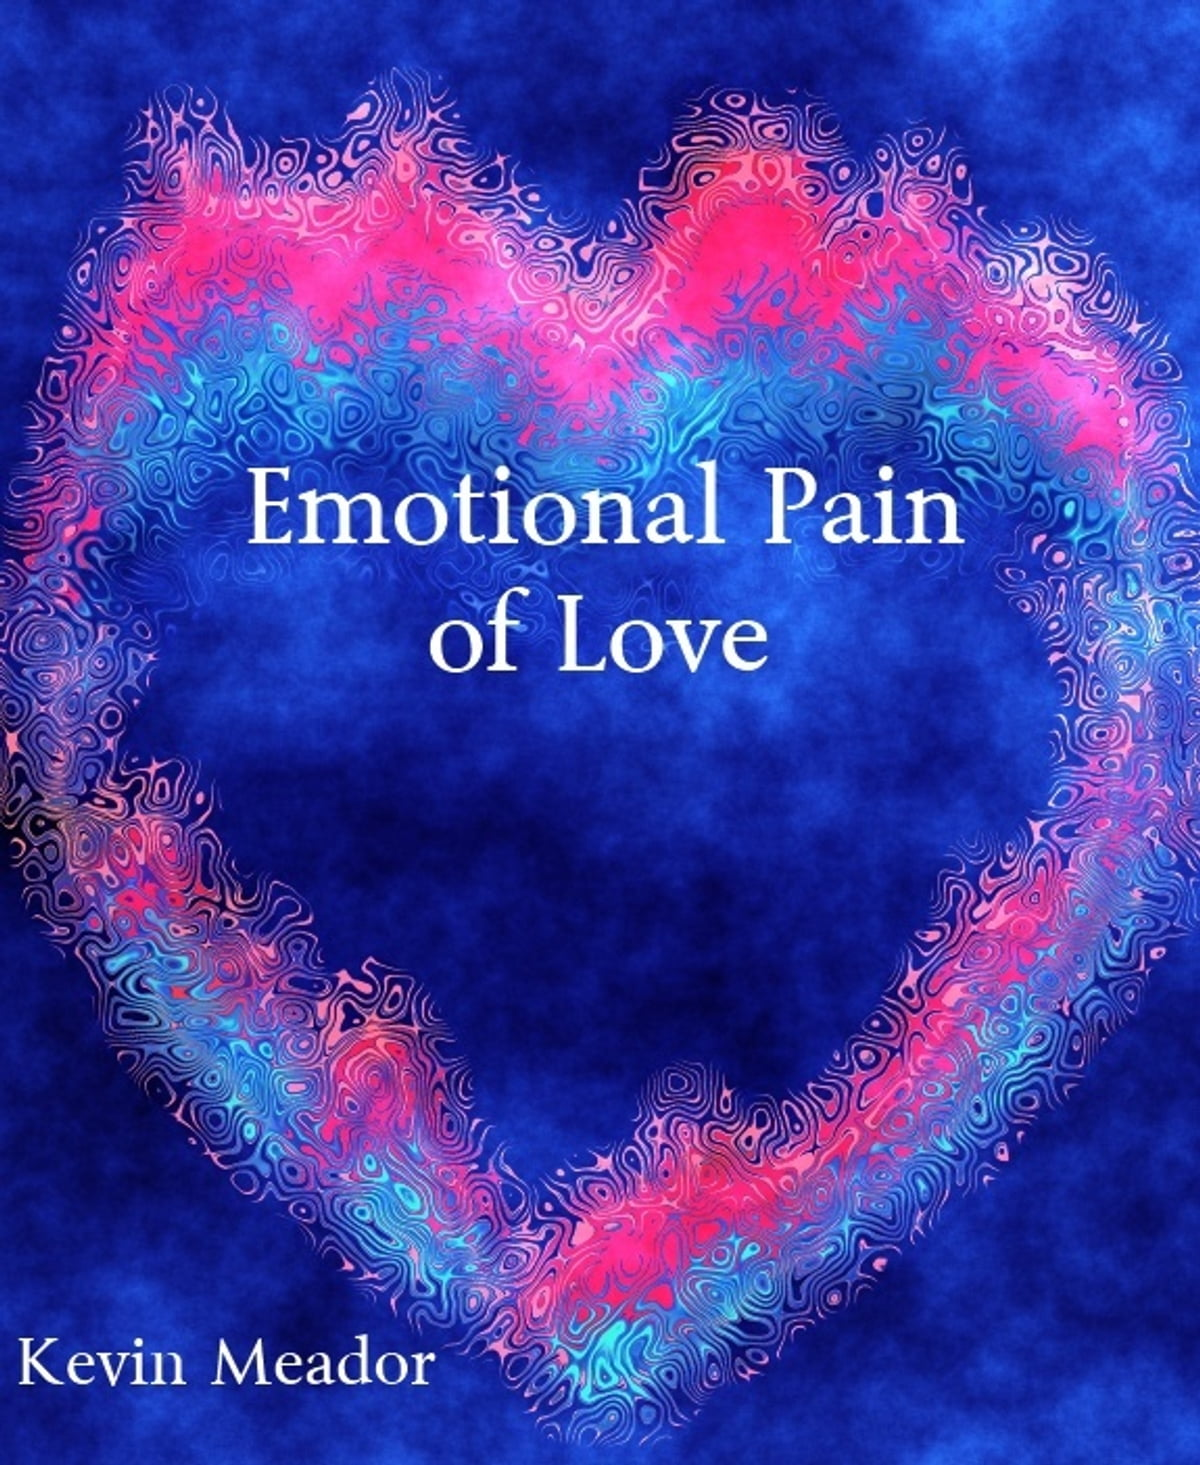 Emotional Pain of Love eBook by Kevin Meador - 9781466006928